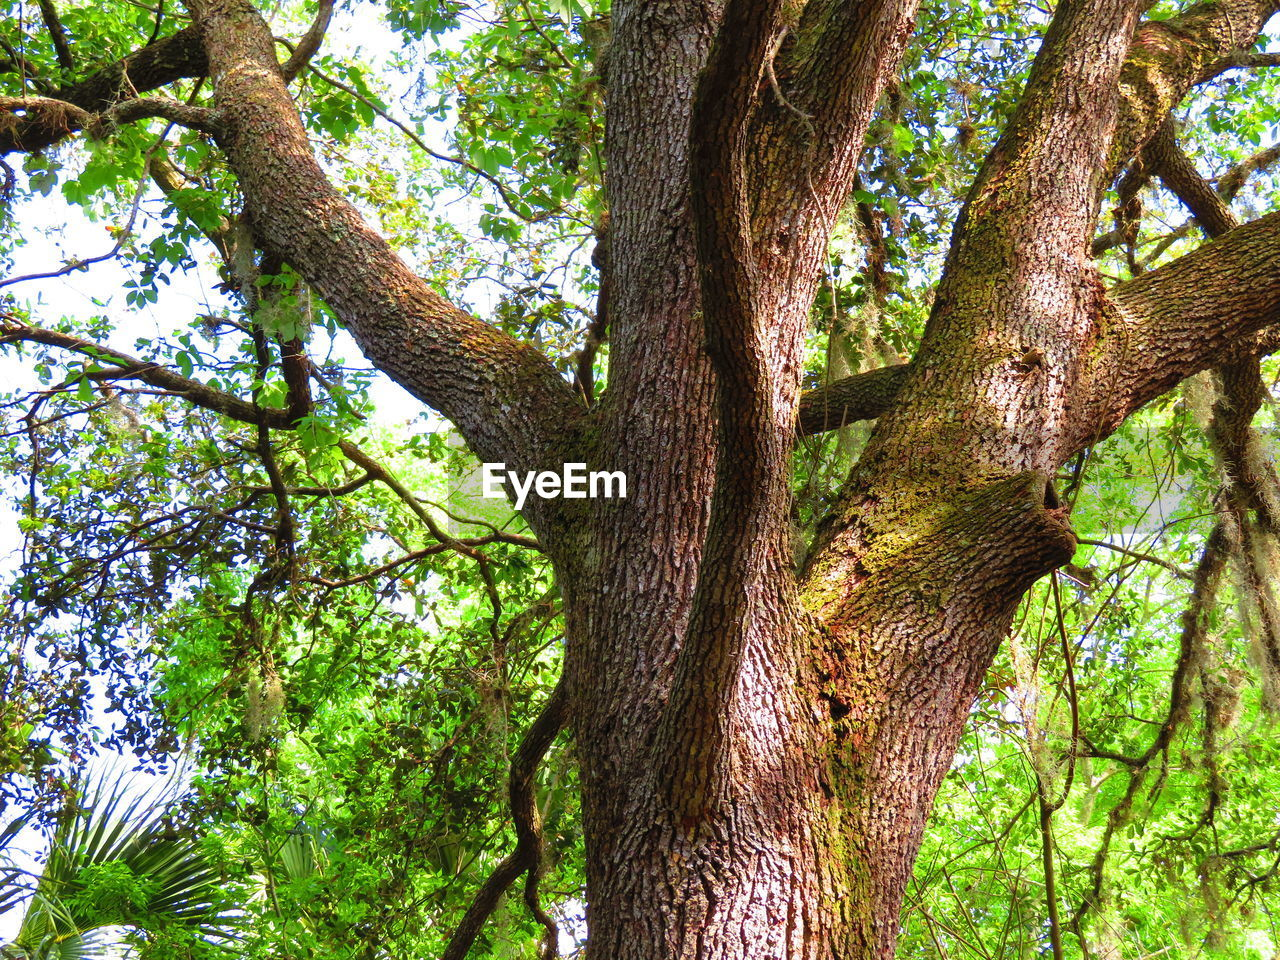 tree, plant, tree trunk, trunk, growth, low angle view, nature, beauty in nature, tranquility, day, forest, no people, green color, land, branch, outdoors, plant part, woodland, leaf, tranquil scene, tree canopy